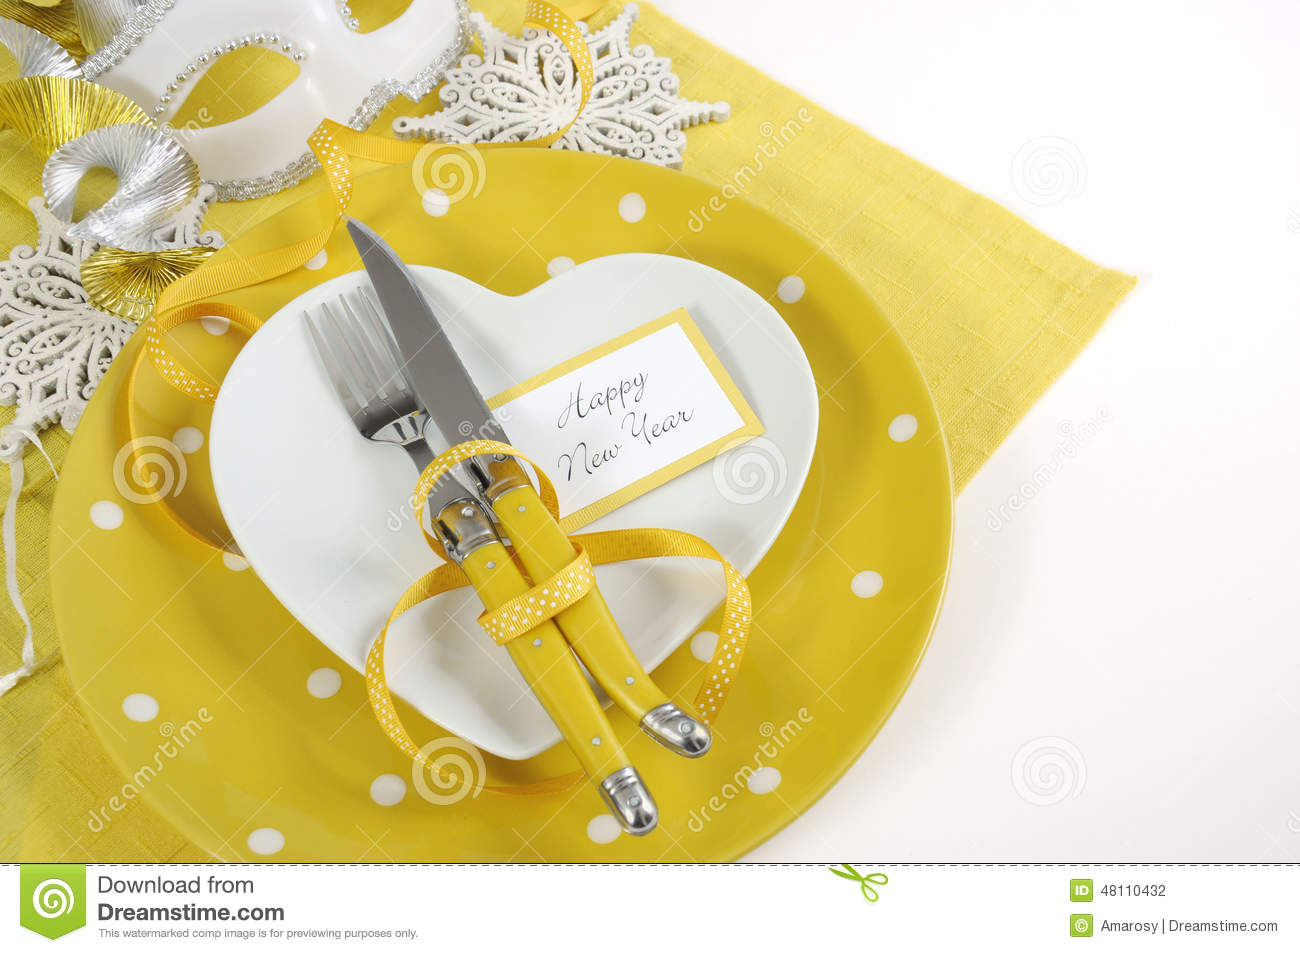 Yellow and white theme Happy New Year table setting